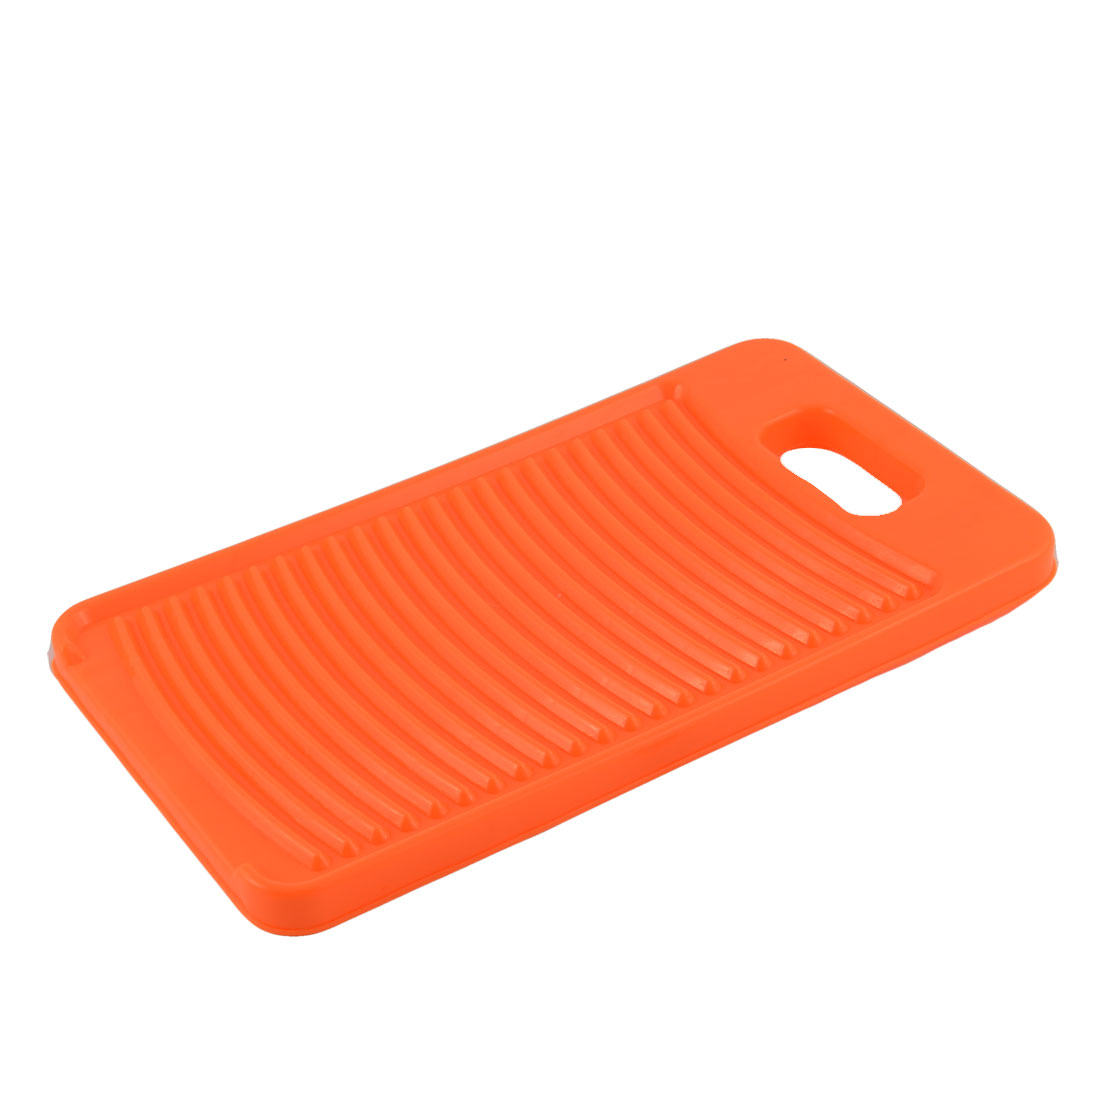 Home Laundry Plastic Thicken Rectangle Antislip Shirts Clothes Clean Washing Board Washboard Orange